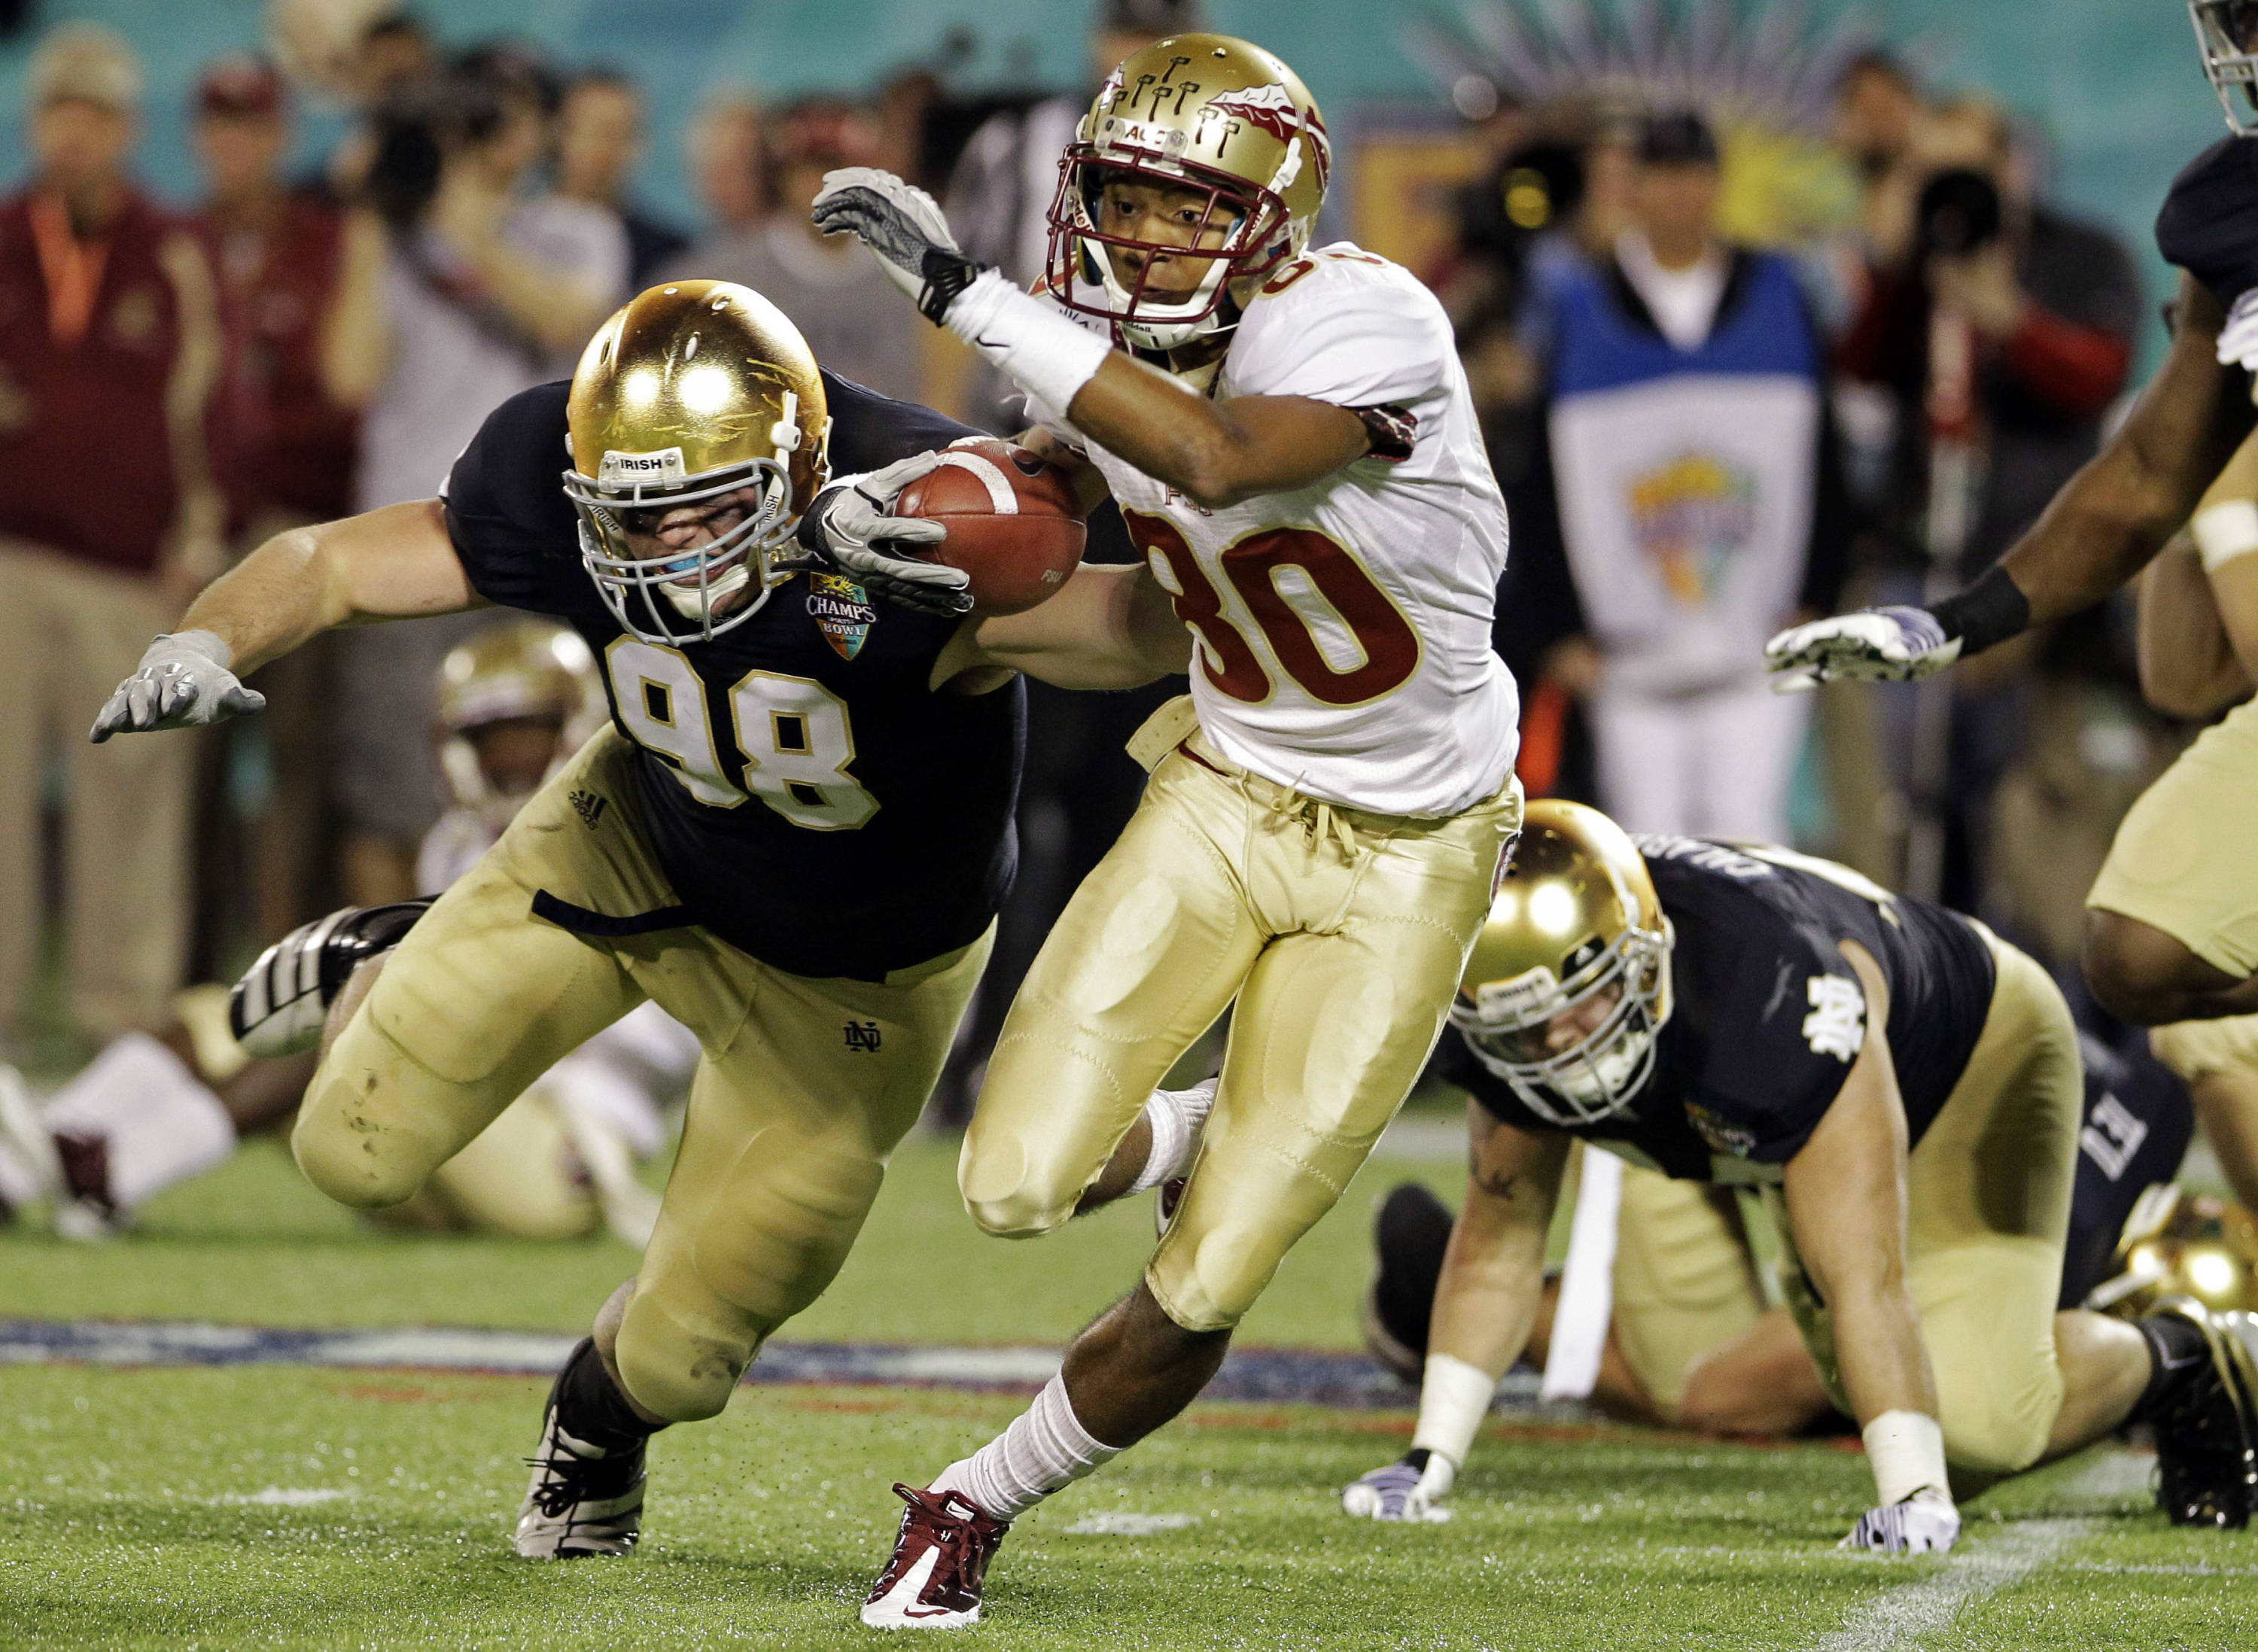 Florida State wide receiver Rashad Greene runs past Notre Dame defensive tackle Sean Cwynar after a reception in the second half. (AP Photo/John Raoux)